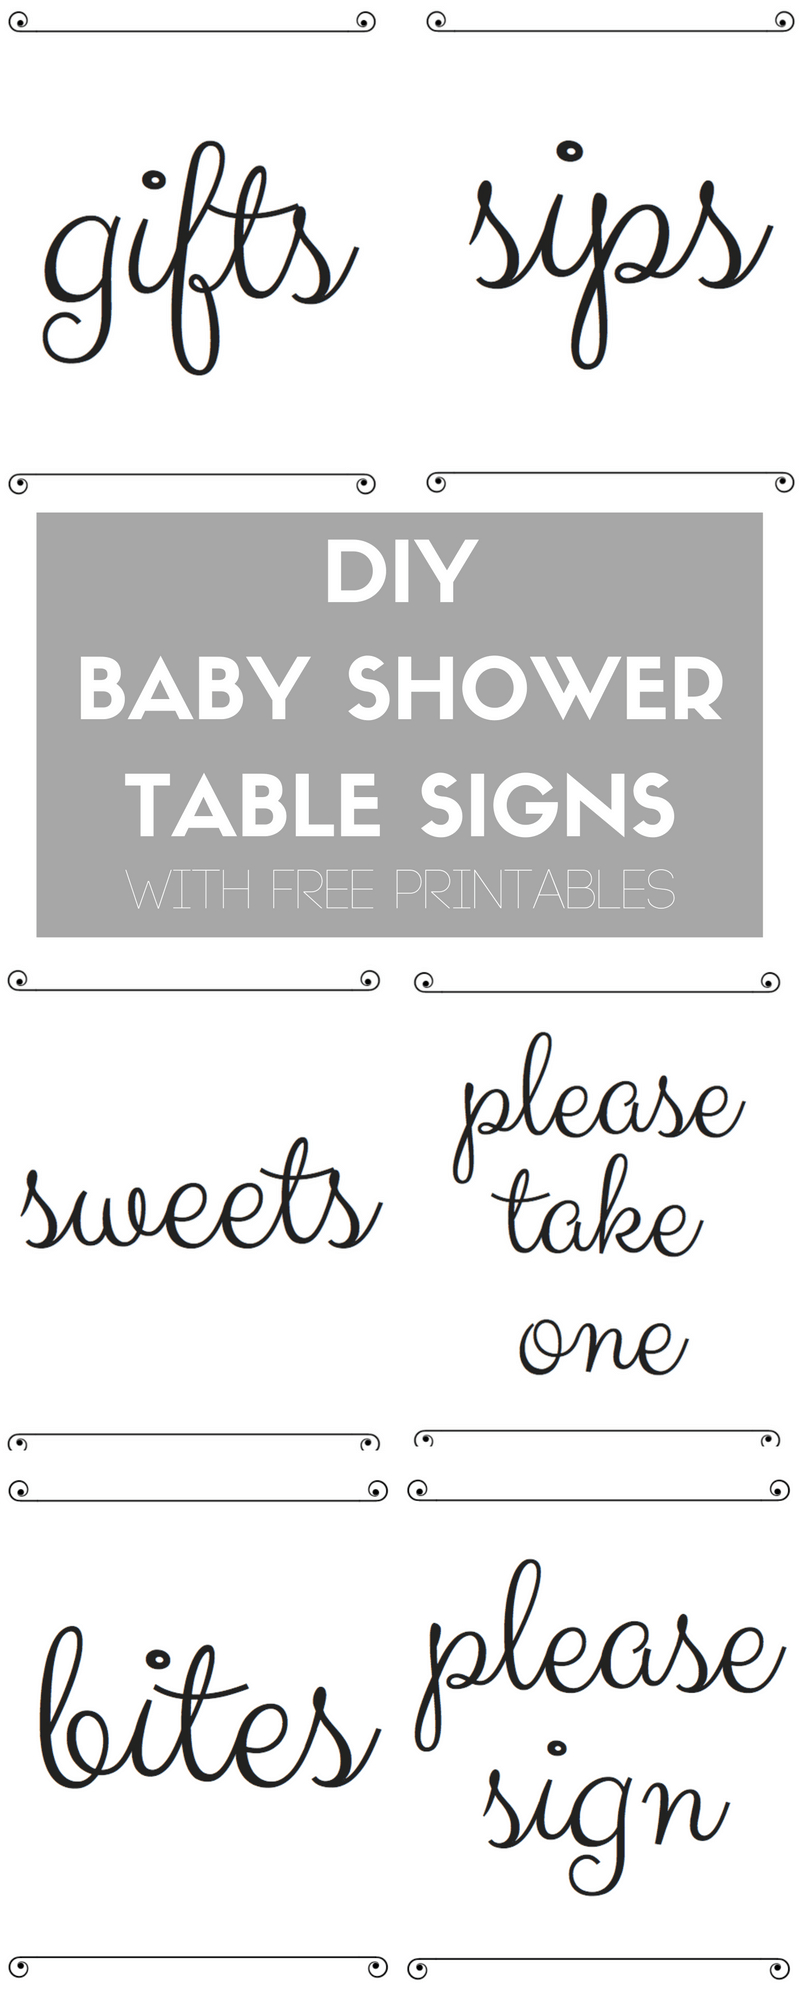 Diy Baby Shower Table Signs With Free Printables - Free Printable Baby Shower Table Signs